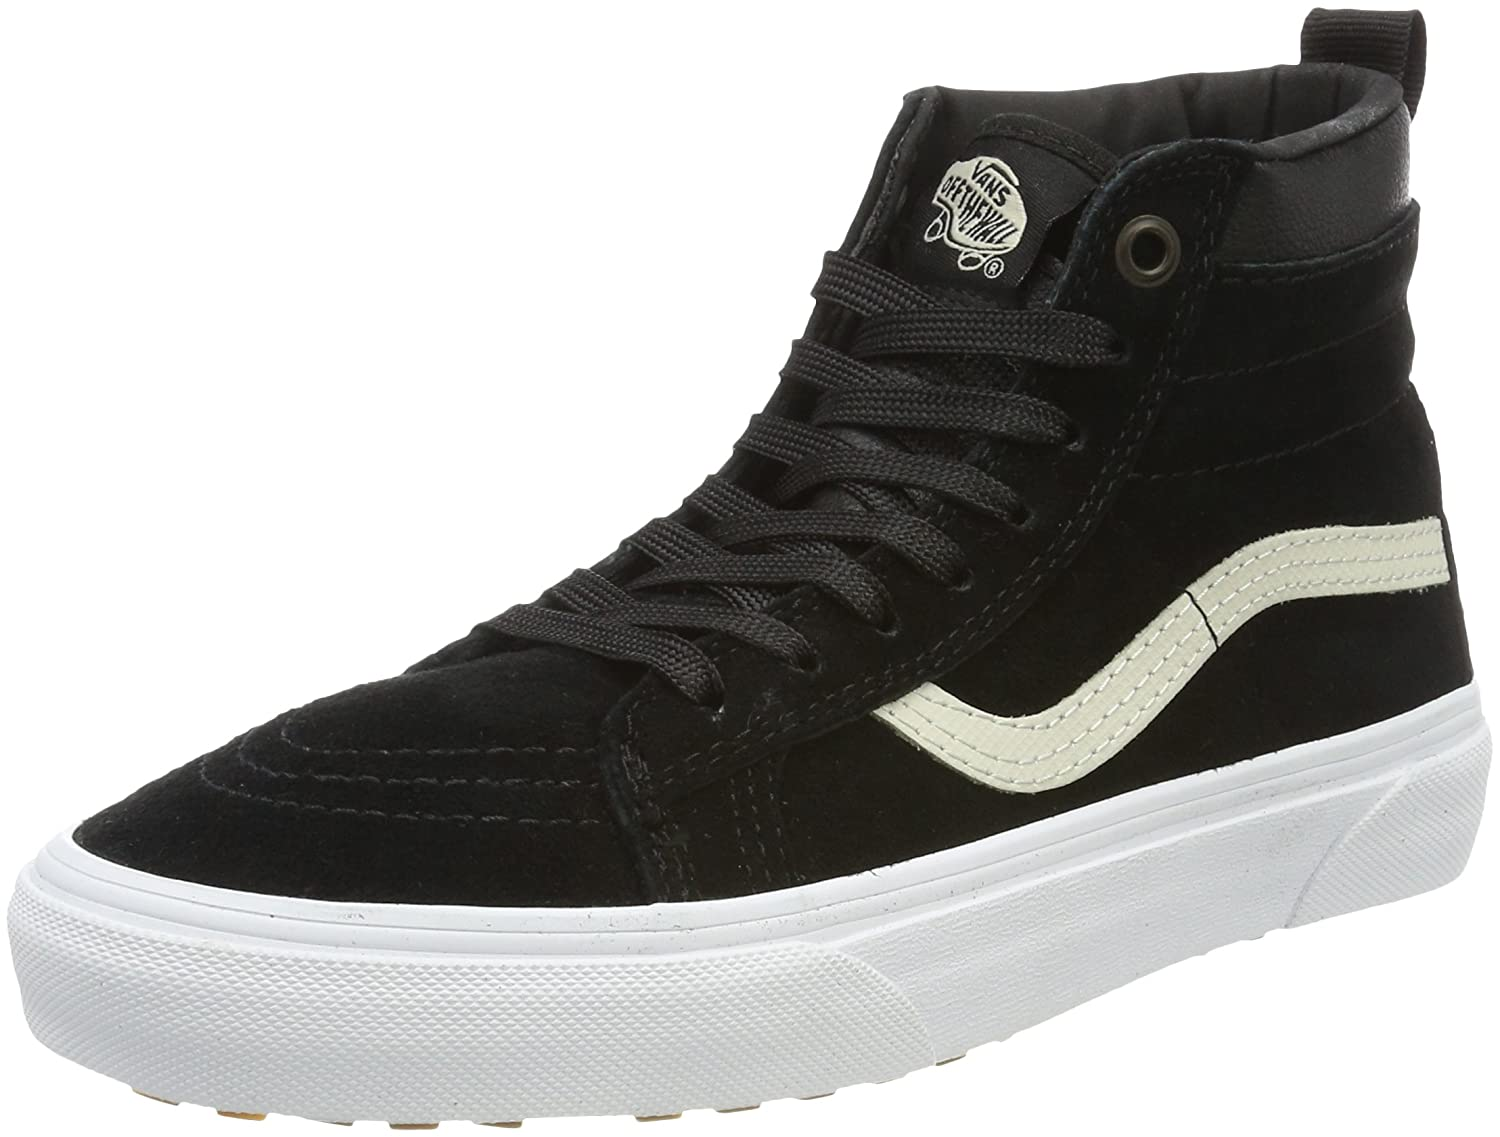 Vans Sk8-Hi MTE, Zapatillas Unisex Adulto 40 EU|Negro (Mte/ Black/Night)